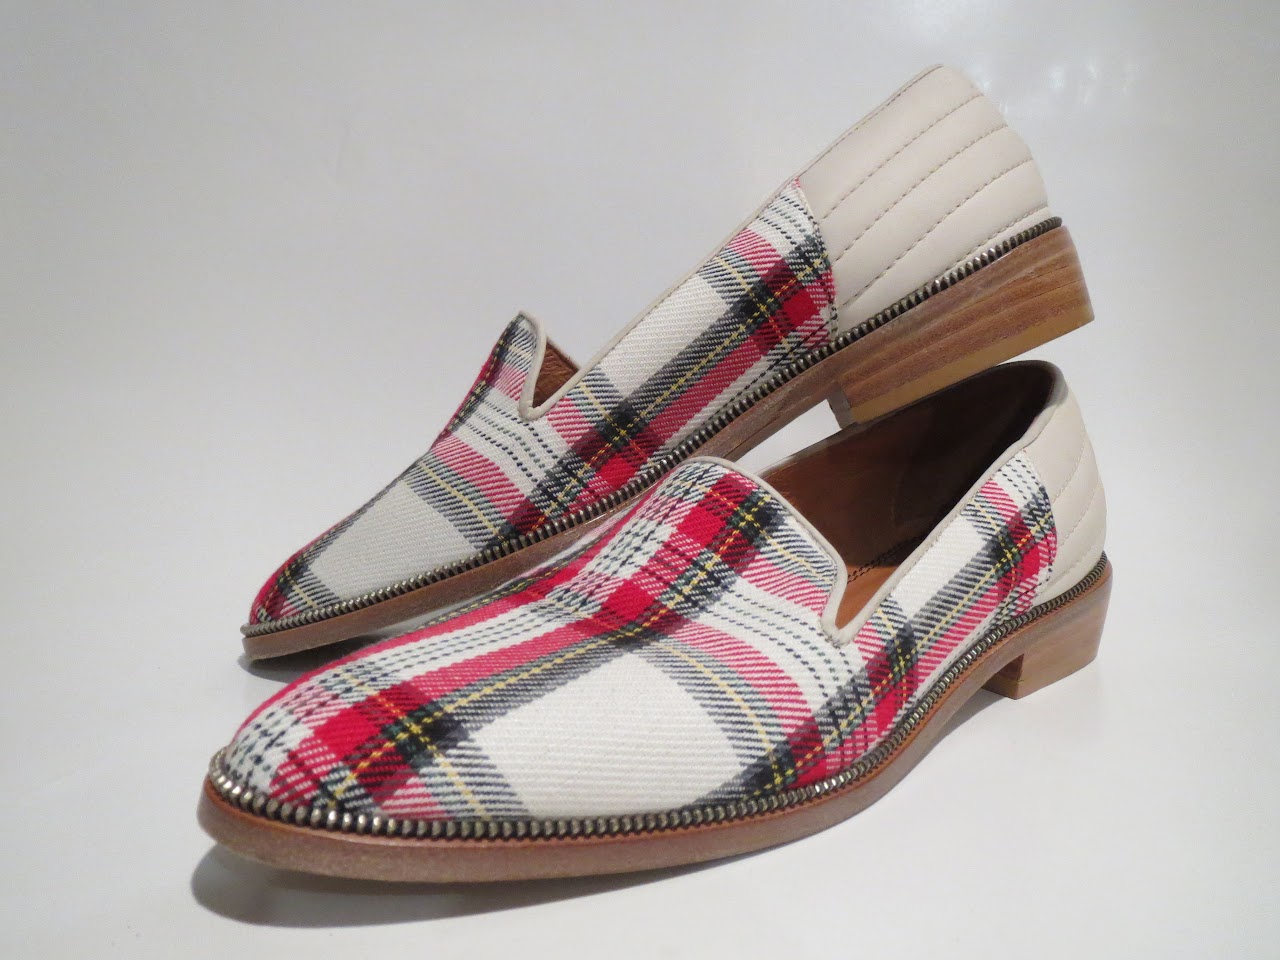 The Kooples Tartan Loafers